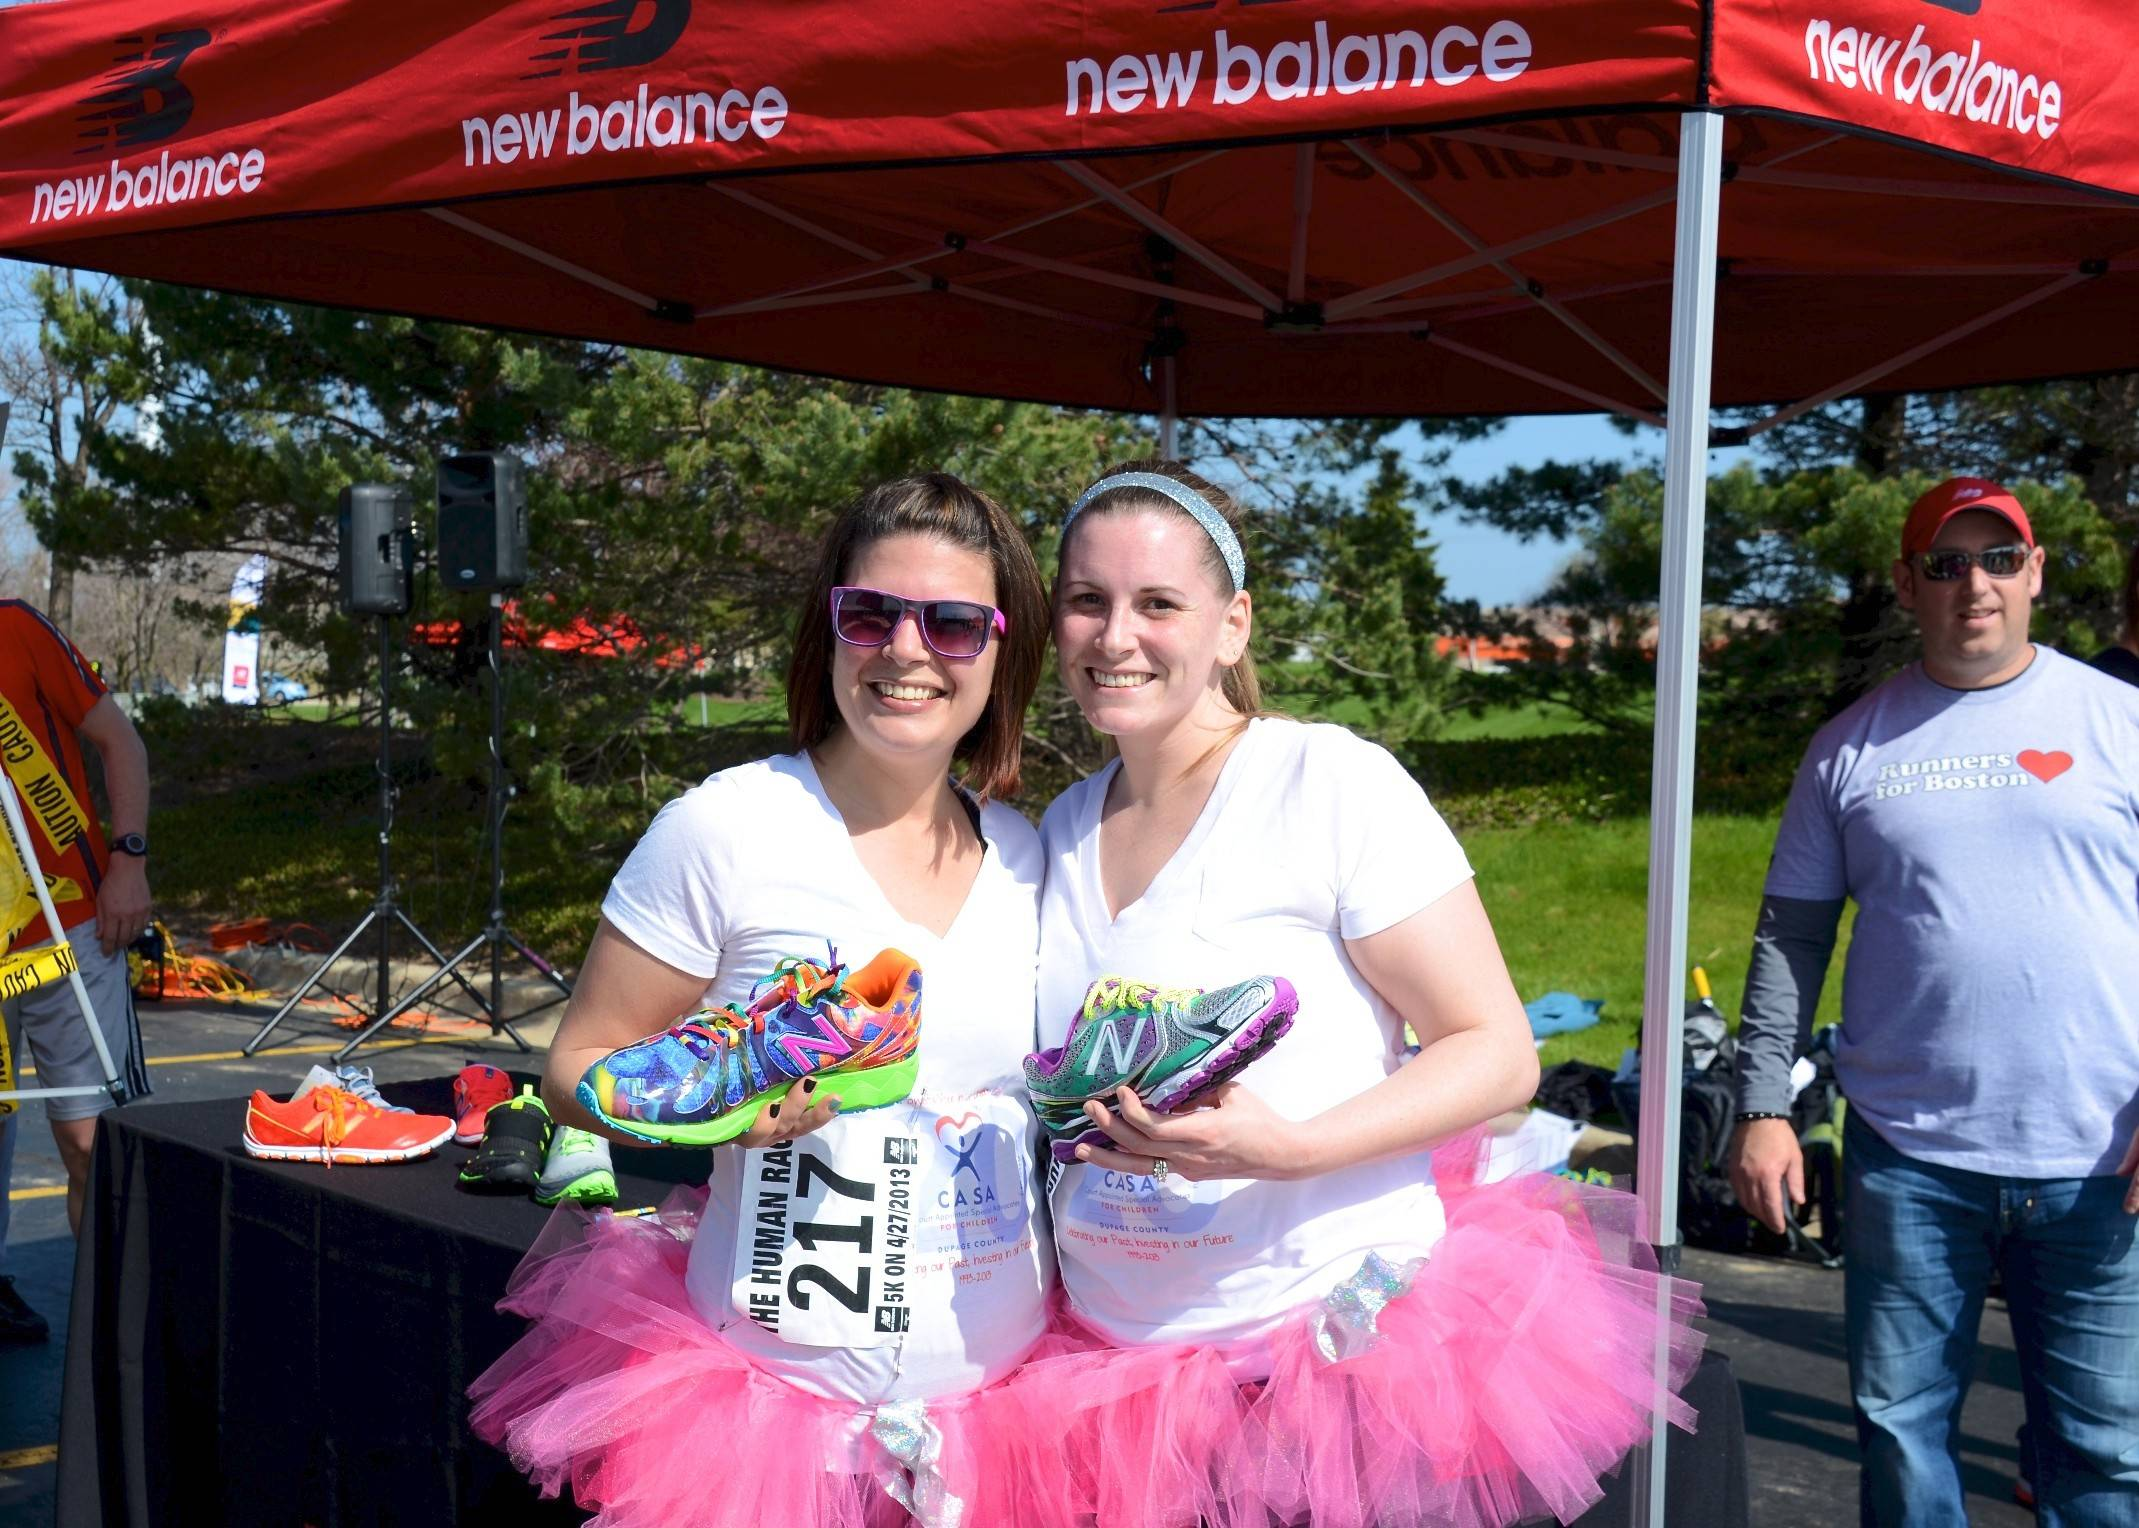 Lyndsay Czwornog of Wheaton, right, and her friend Tiffany Baker ran last year's Human Race in tutus on behalf of CASA of DuPage, where Czwornog volunteers. She'll run again in the 2014 race.